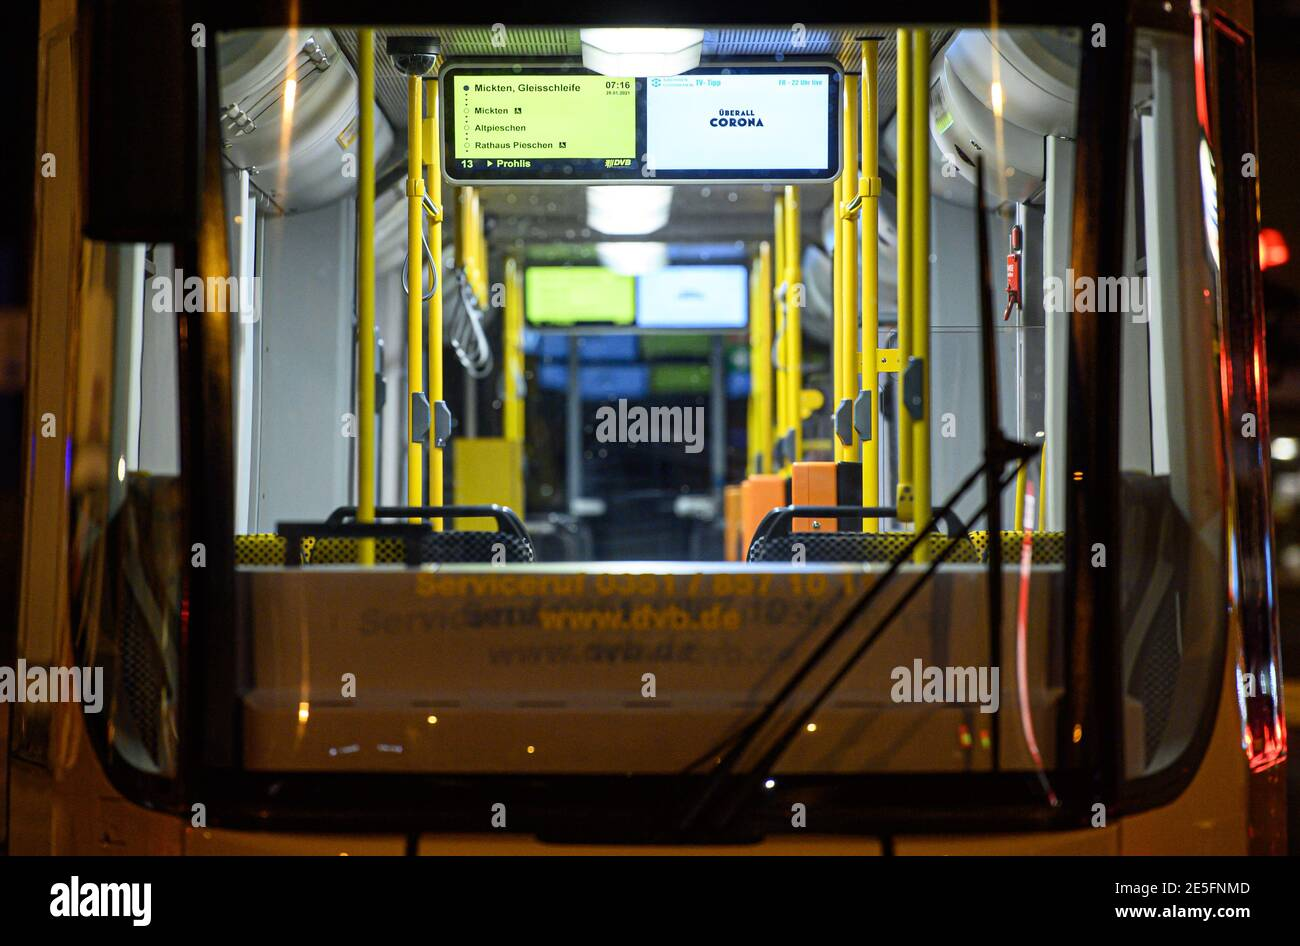 Passenger Television High Resolution Stock Photography And Images Alamy